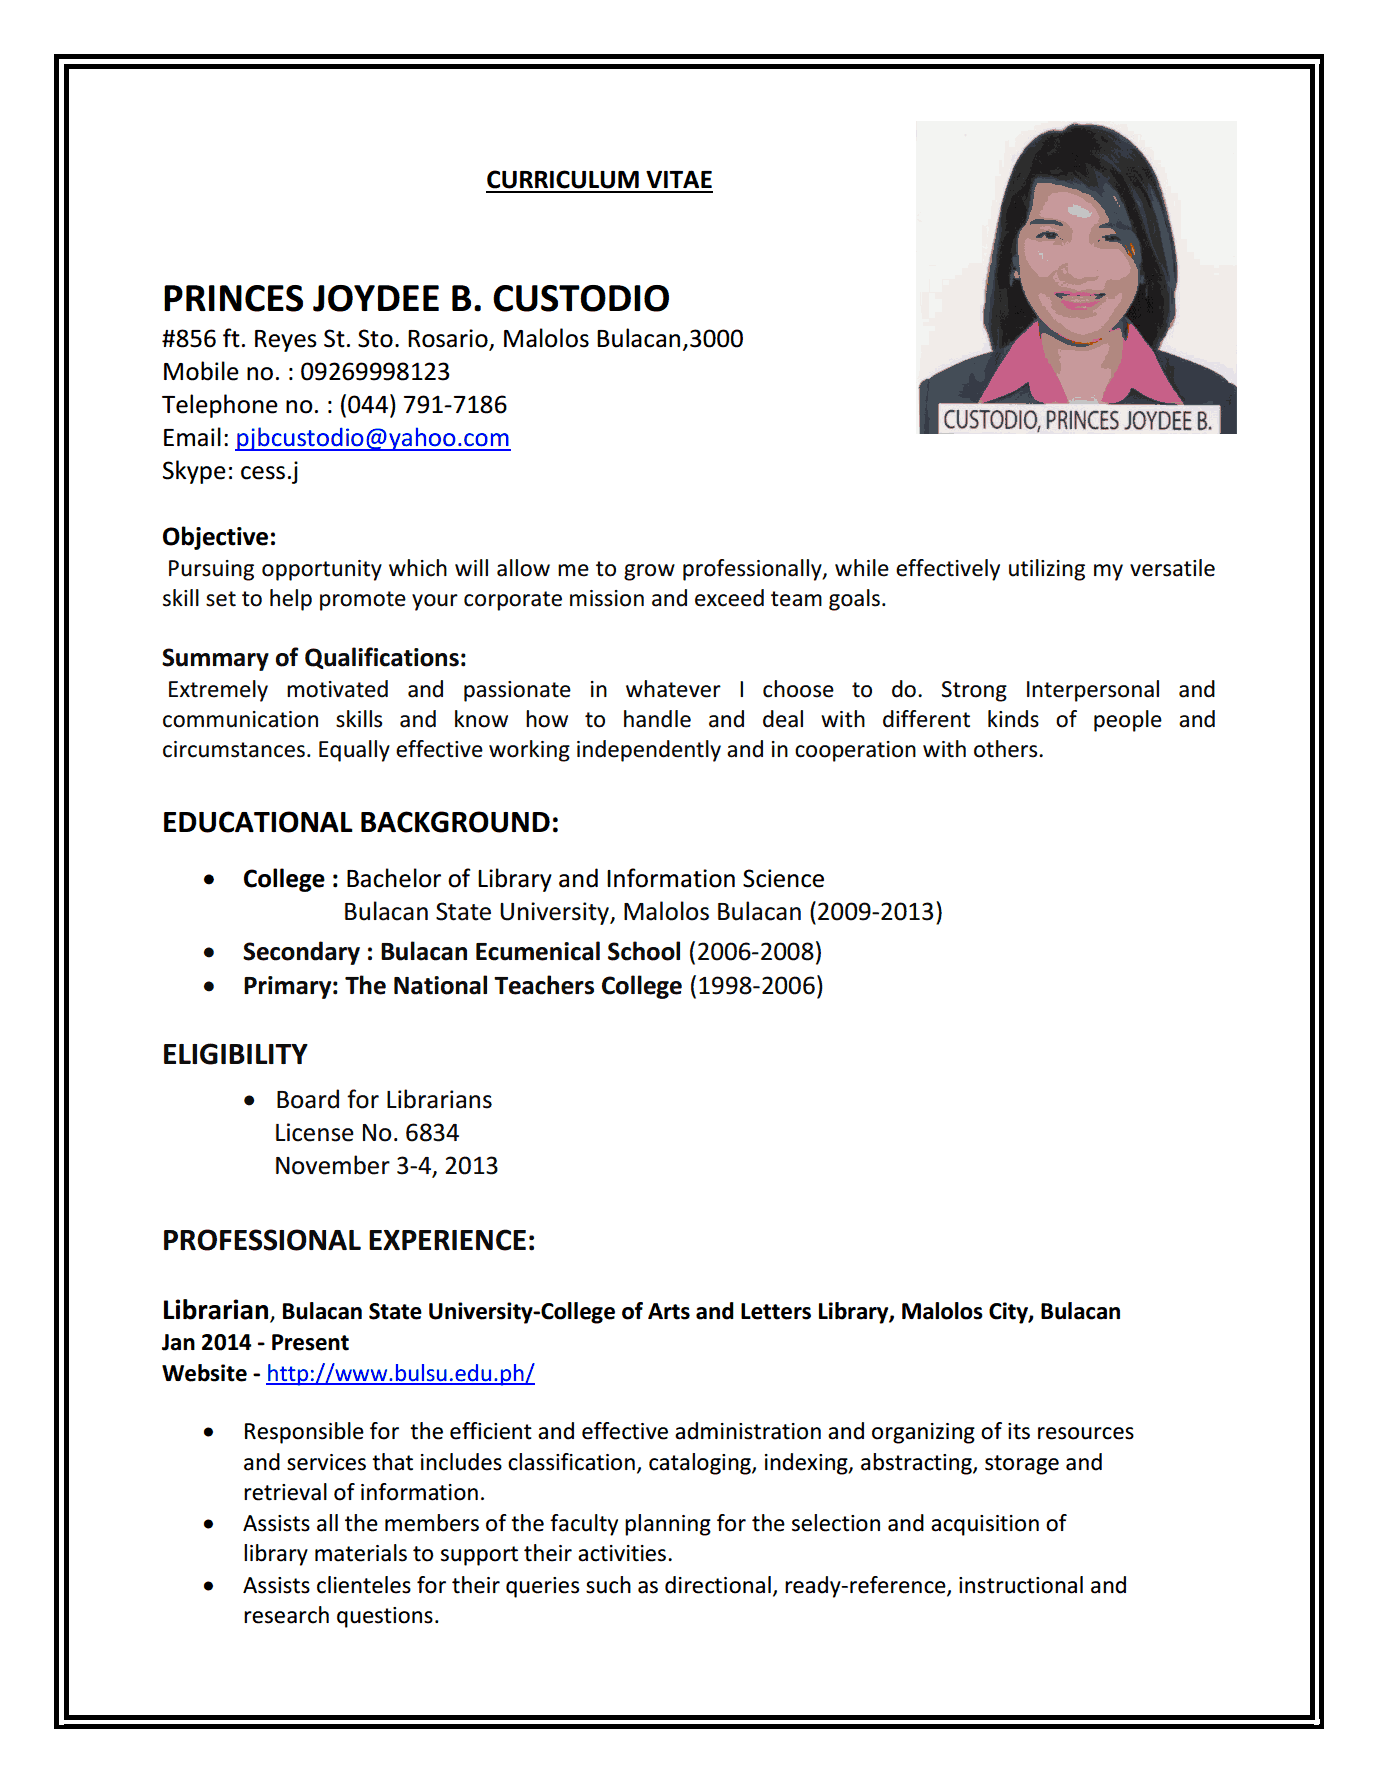 custodio1 custodio2 custodio3. Resume Example. Resume CV Cover Letter